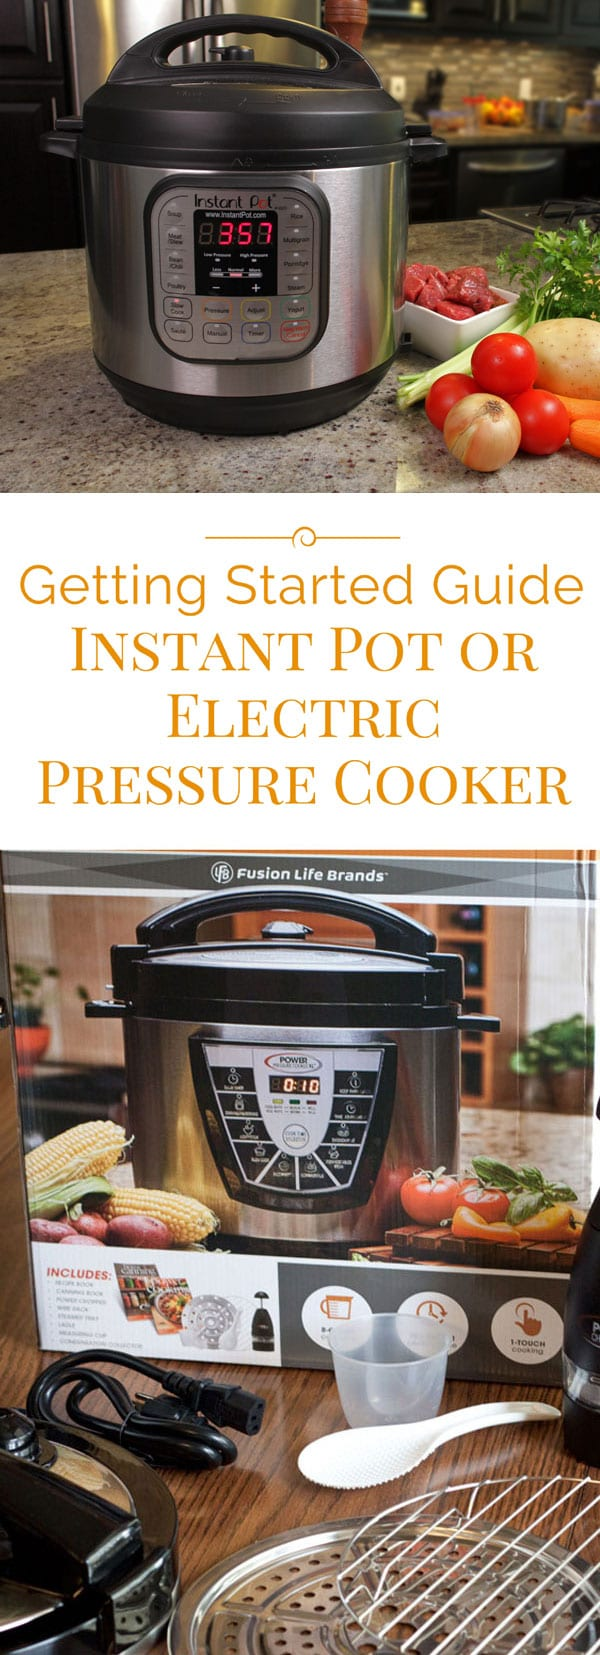 Getting started with your new Electric Pressure Cooker or Instant Pot? Electric pressure cookers make cooking faster and easier than ever before! Here are my tips on using electric pressure cookers and multi-cookers like the Instant Pot, Fagor Lux, Power Pressure Cooker XL, and others.